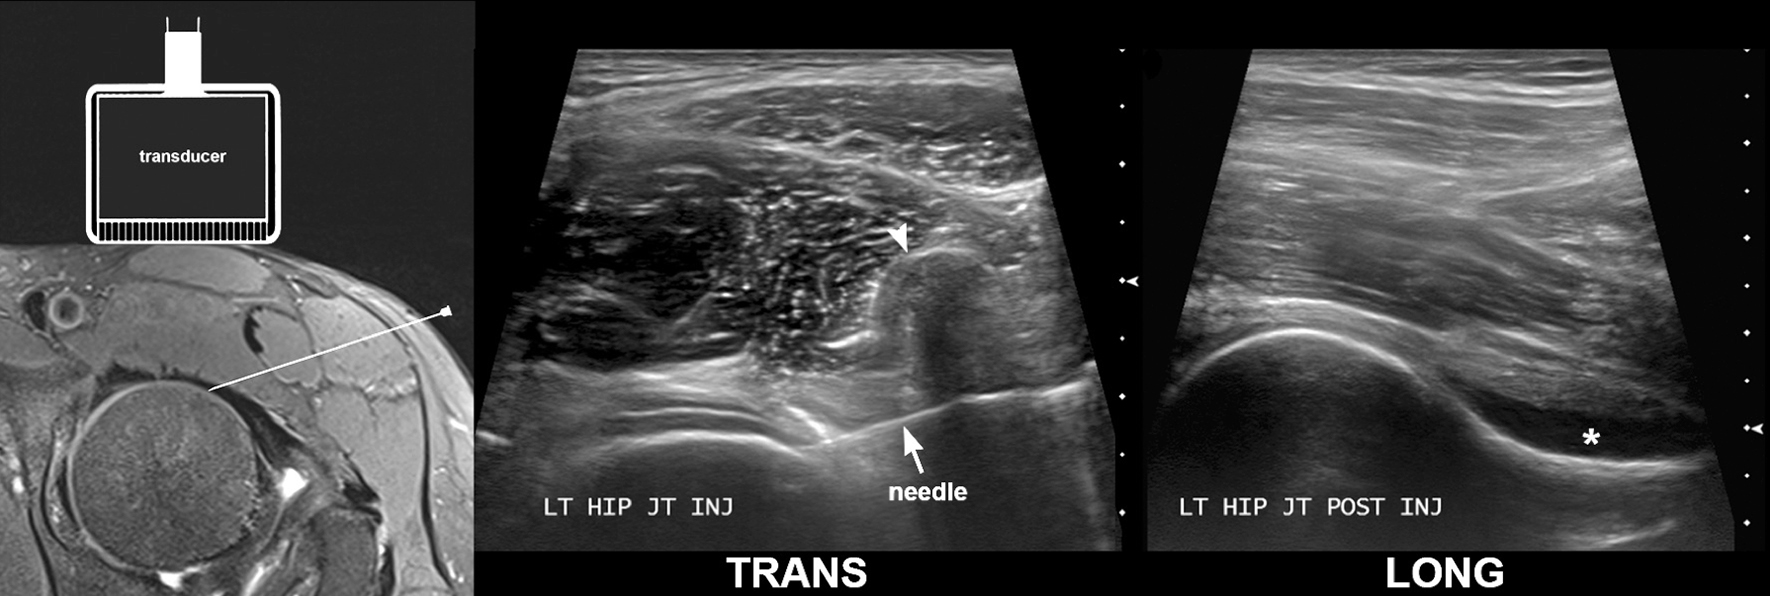 Hip / Groin / Thigh Archives - Sports Medicine Imaging